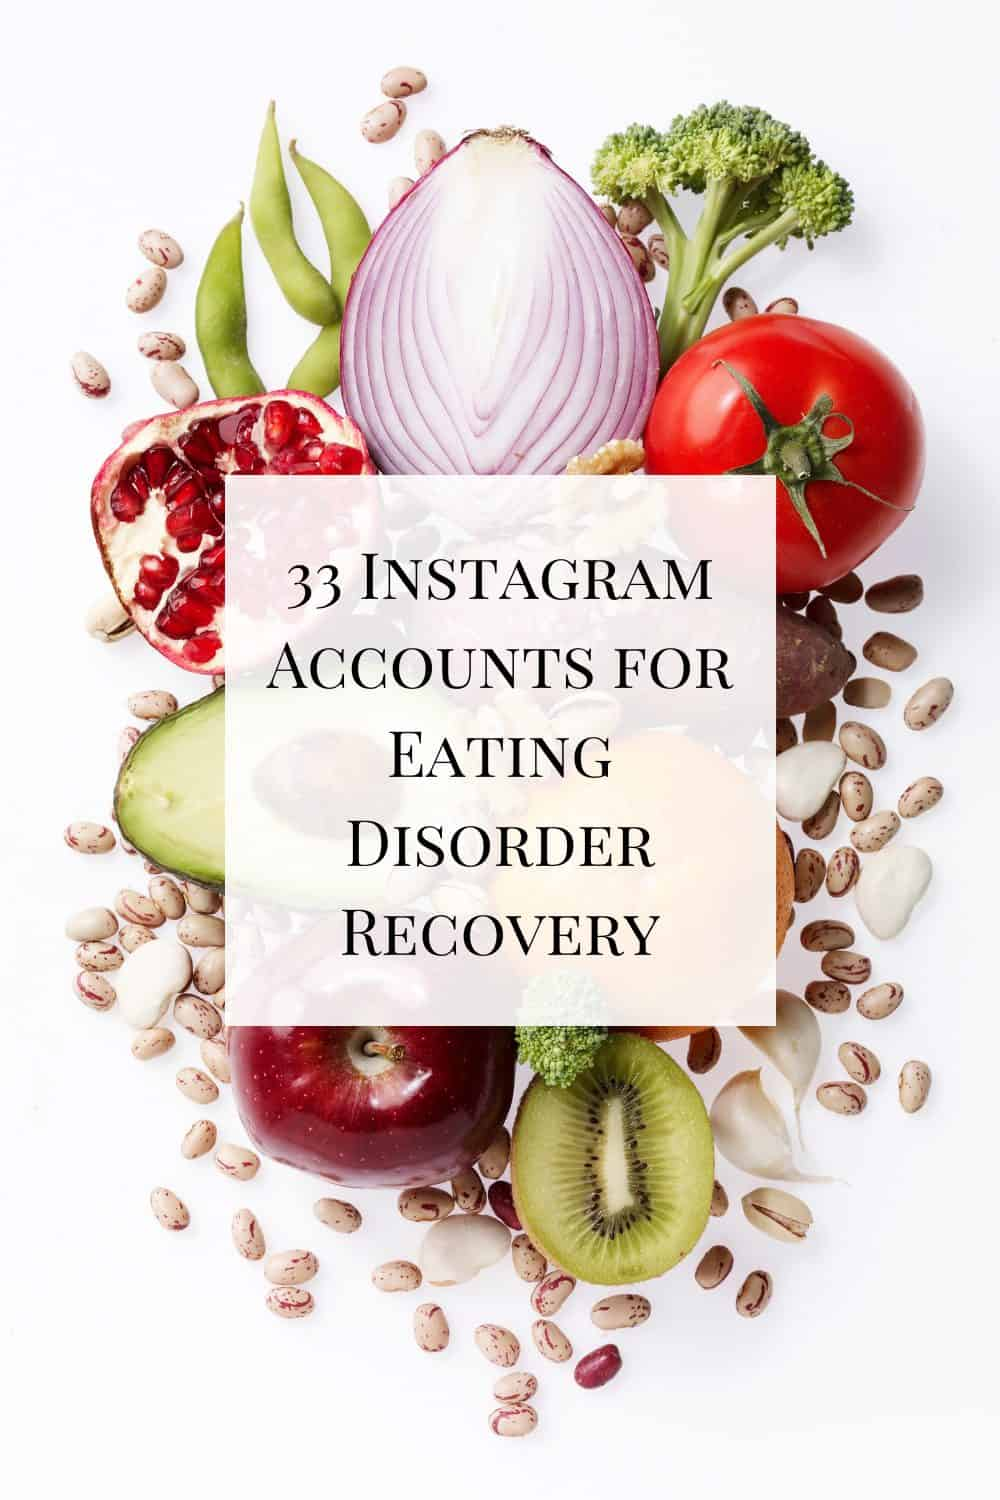 A collection of 33 Instagram accounts for eating disorder recovery to help educate, inspire, and offer hope for recovery.